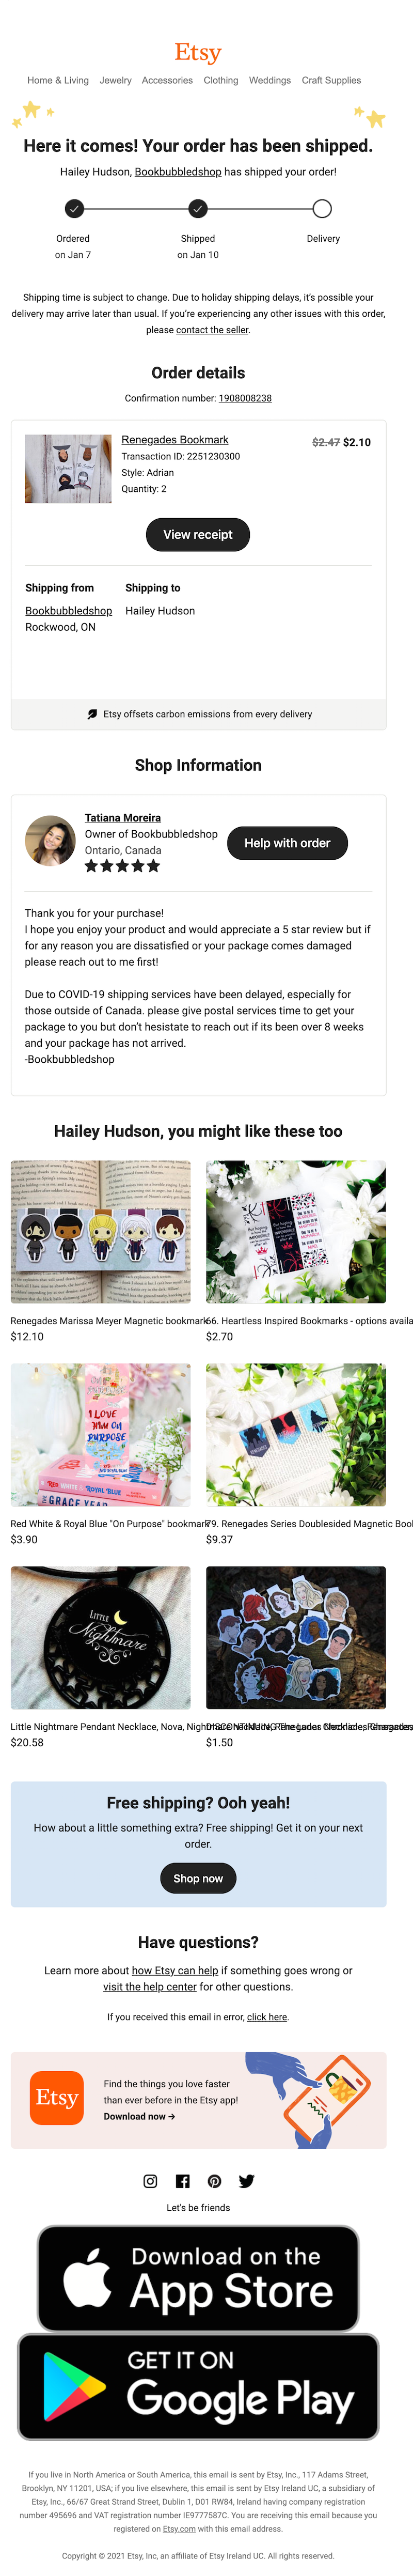 etsy shipping email